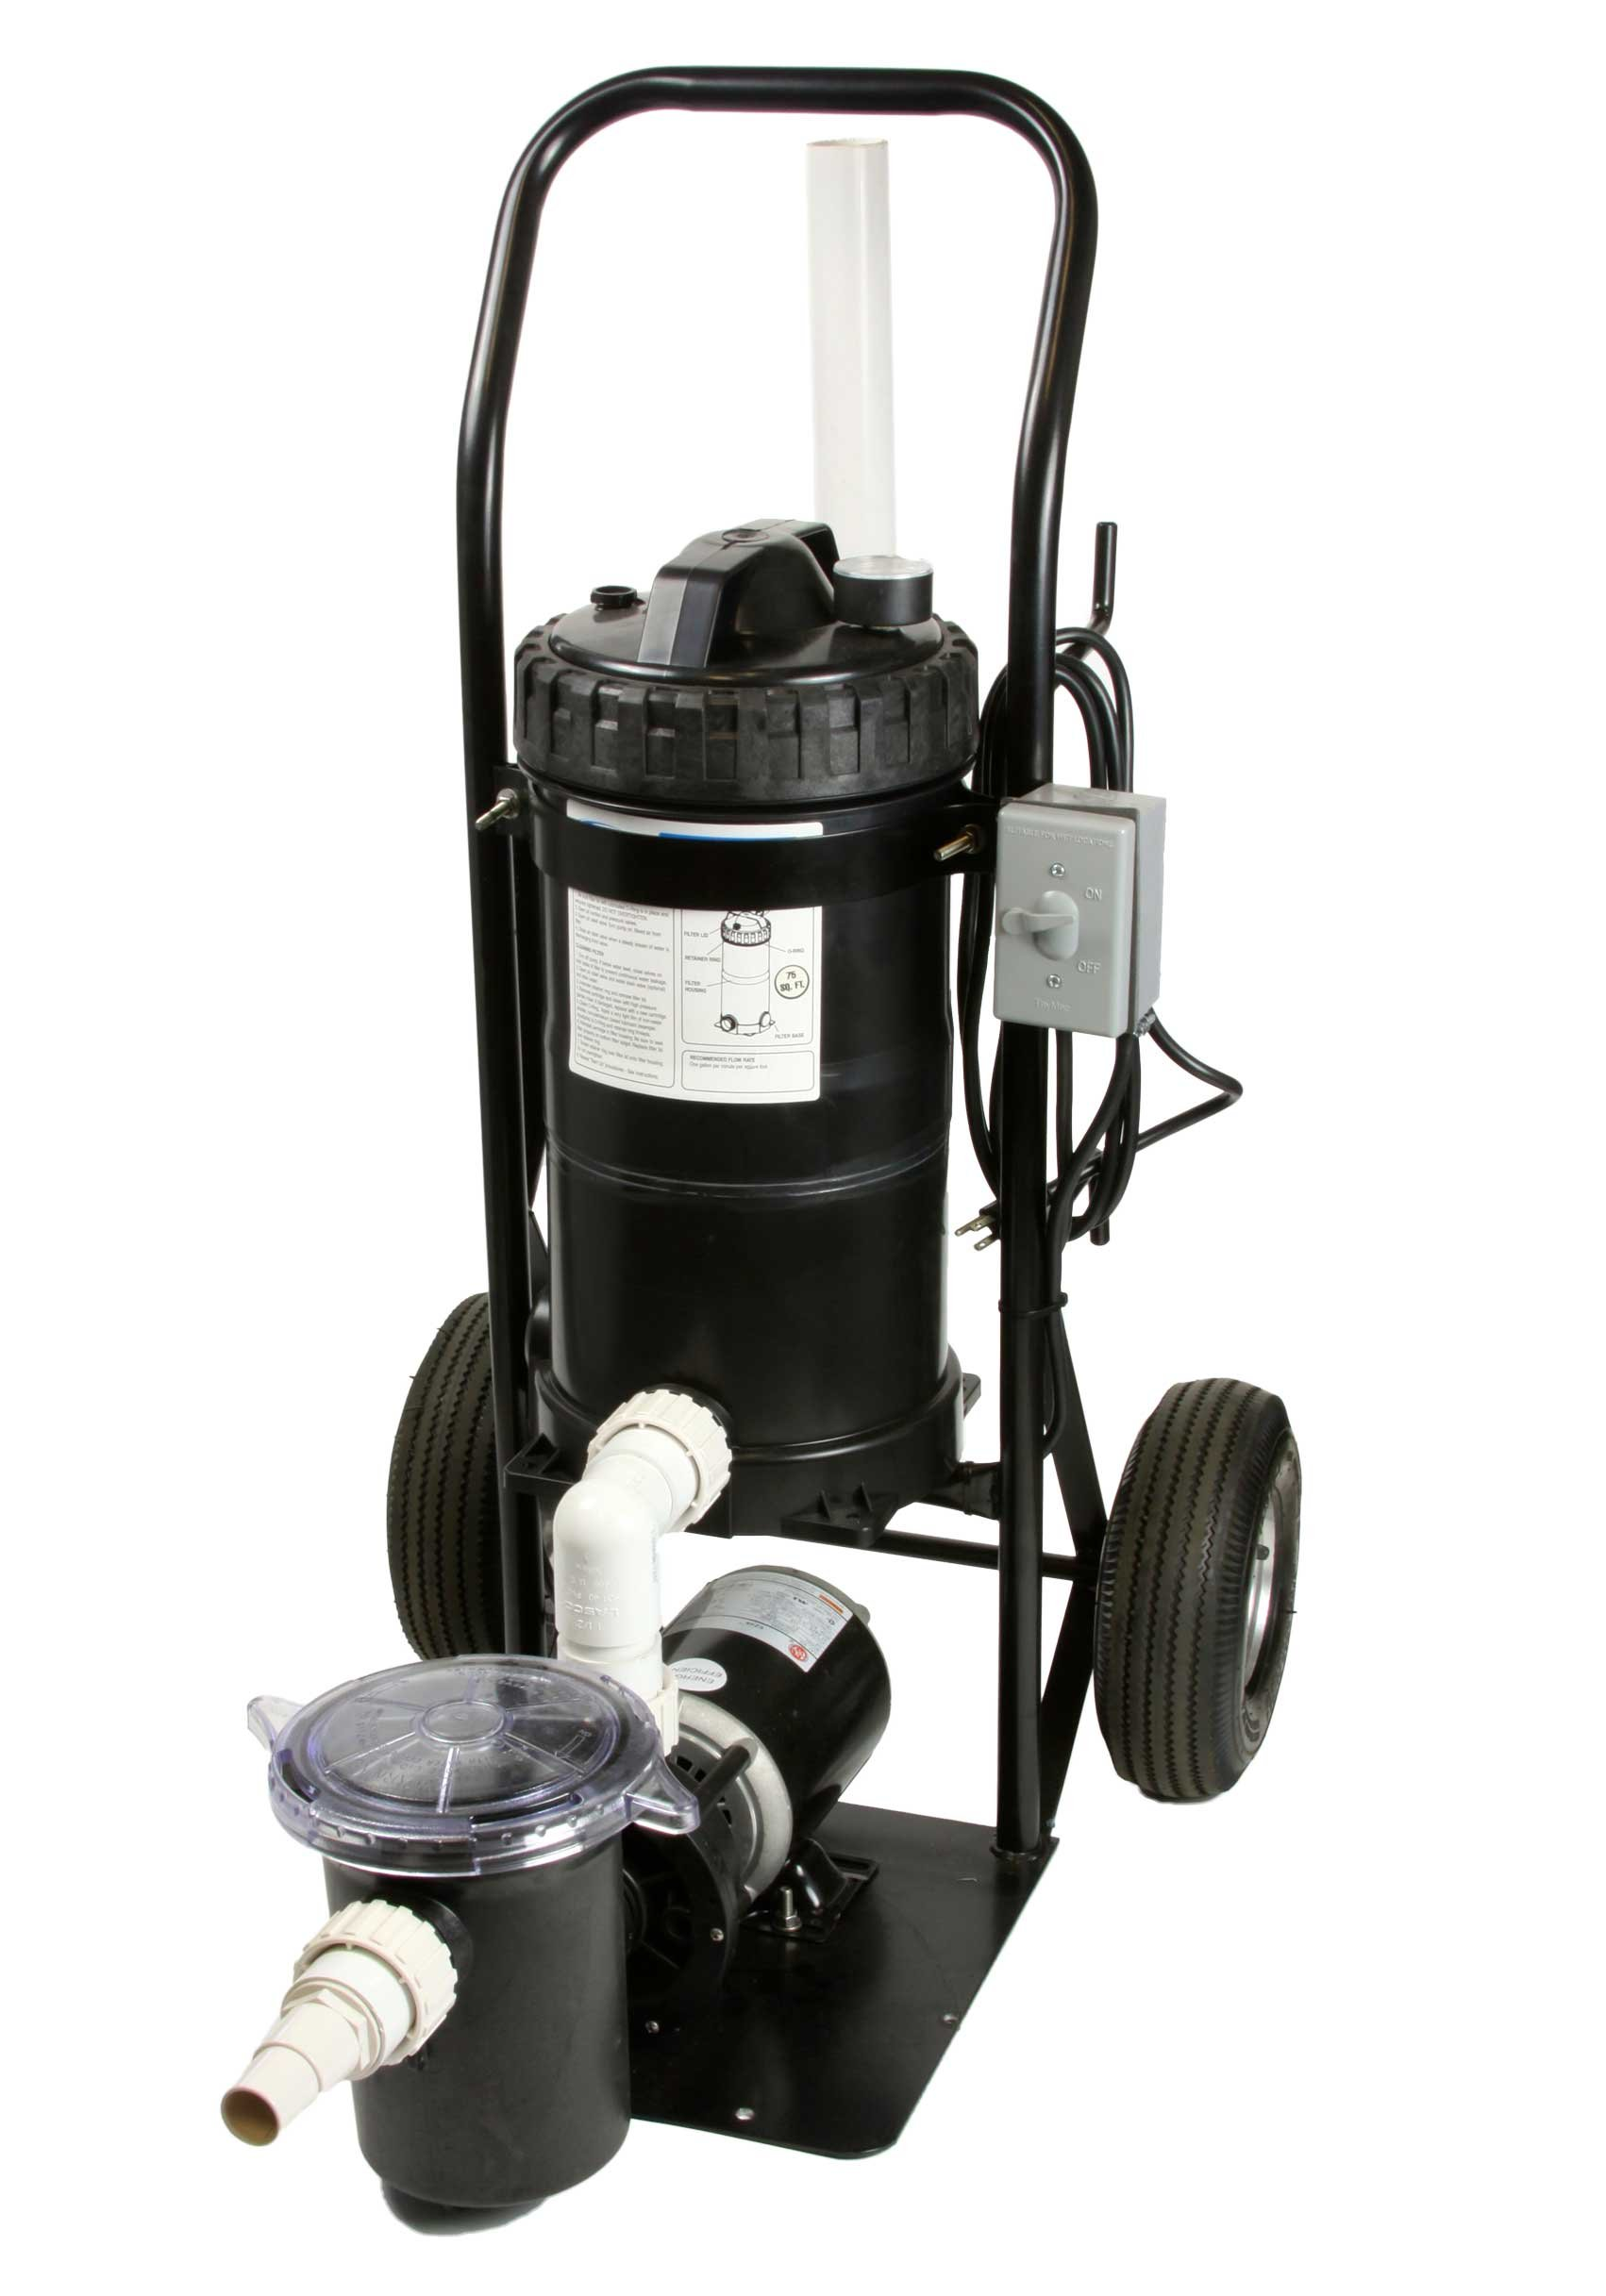 Portable Pool Filter System Mini Vac 1 HP System Generates 50 GPM Mounted on a Small Cart